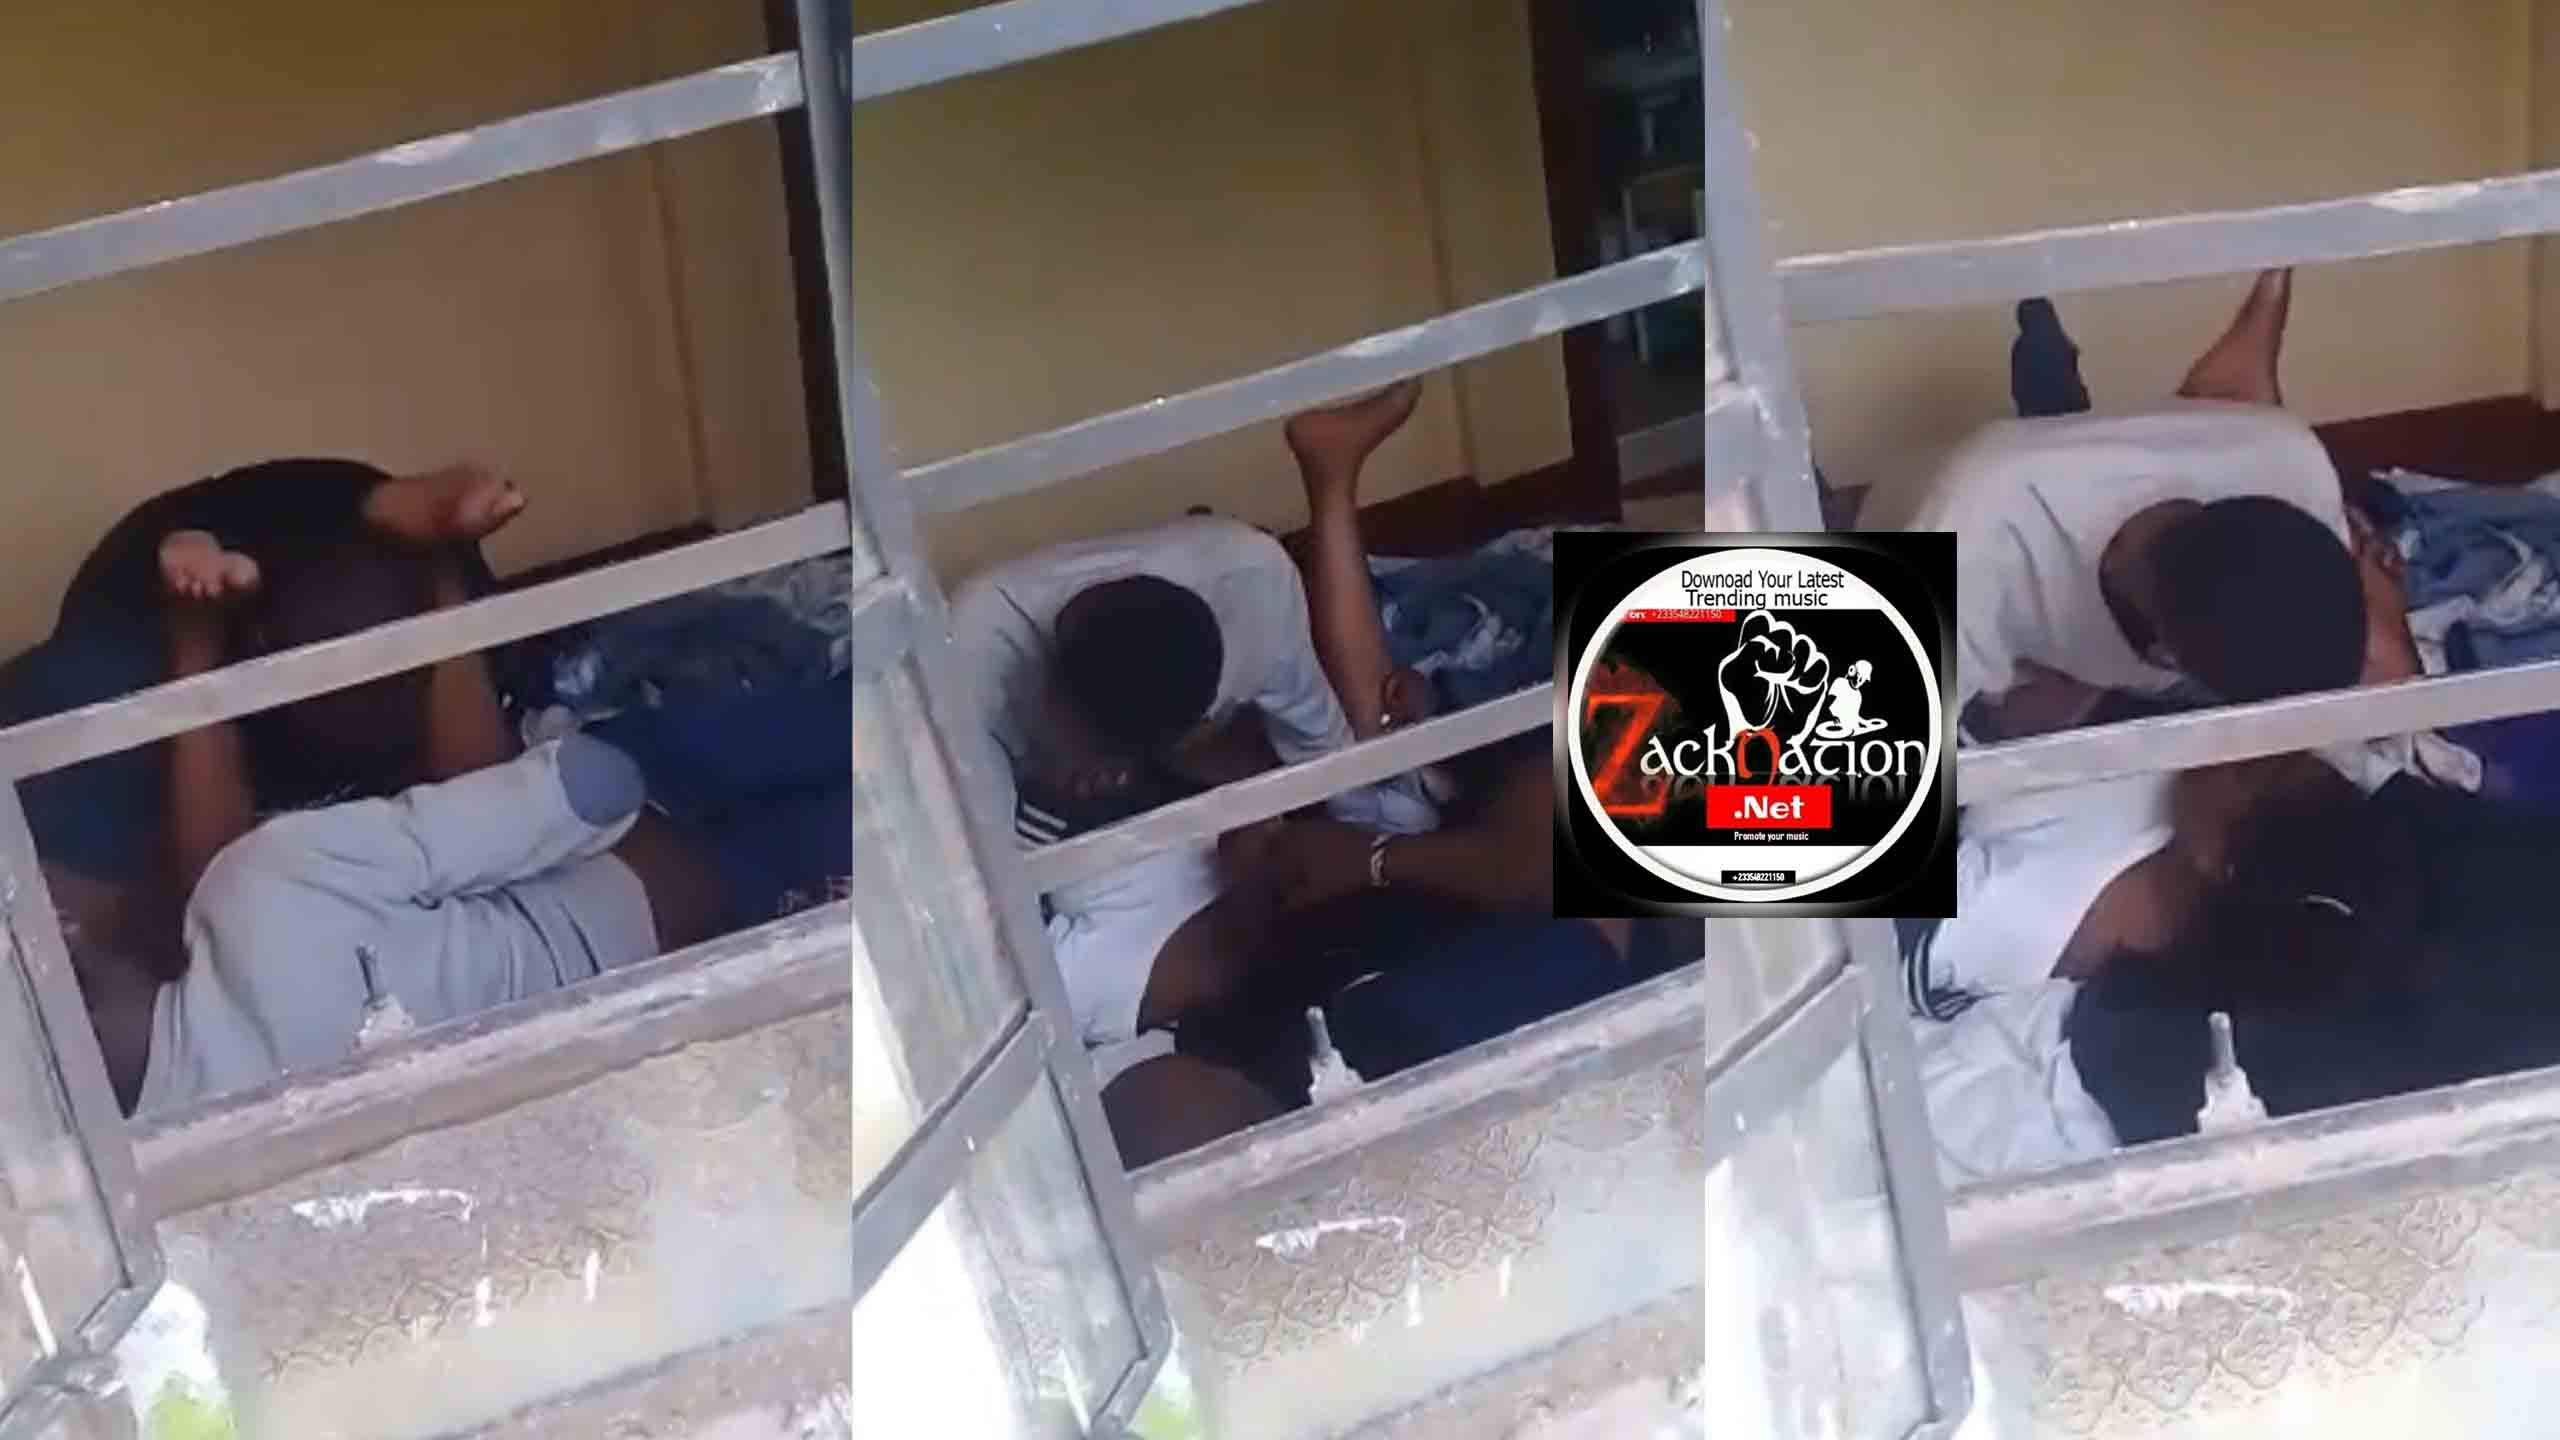 Watch The University Student Doing 3some In A Hostel (Video)